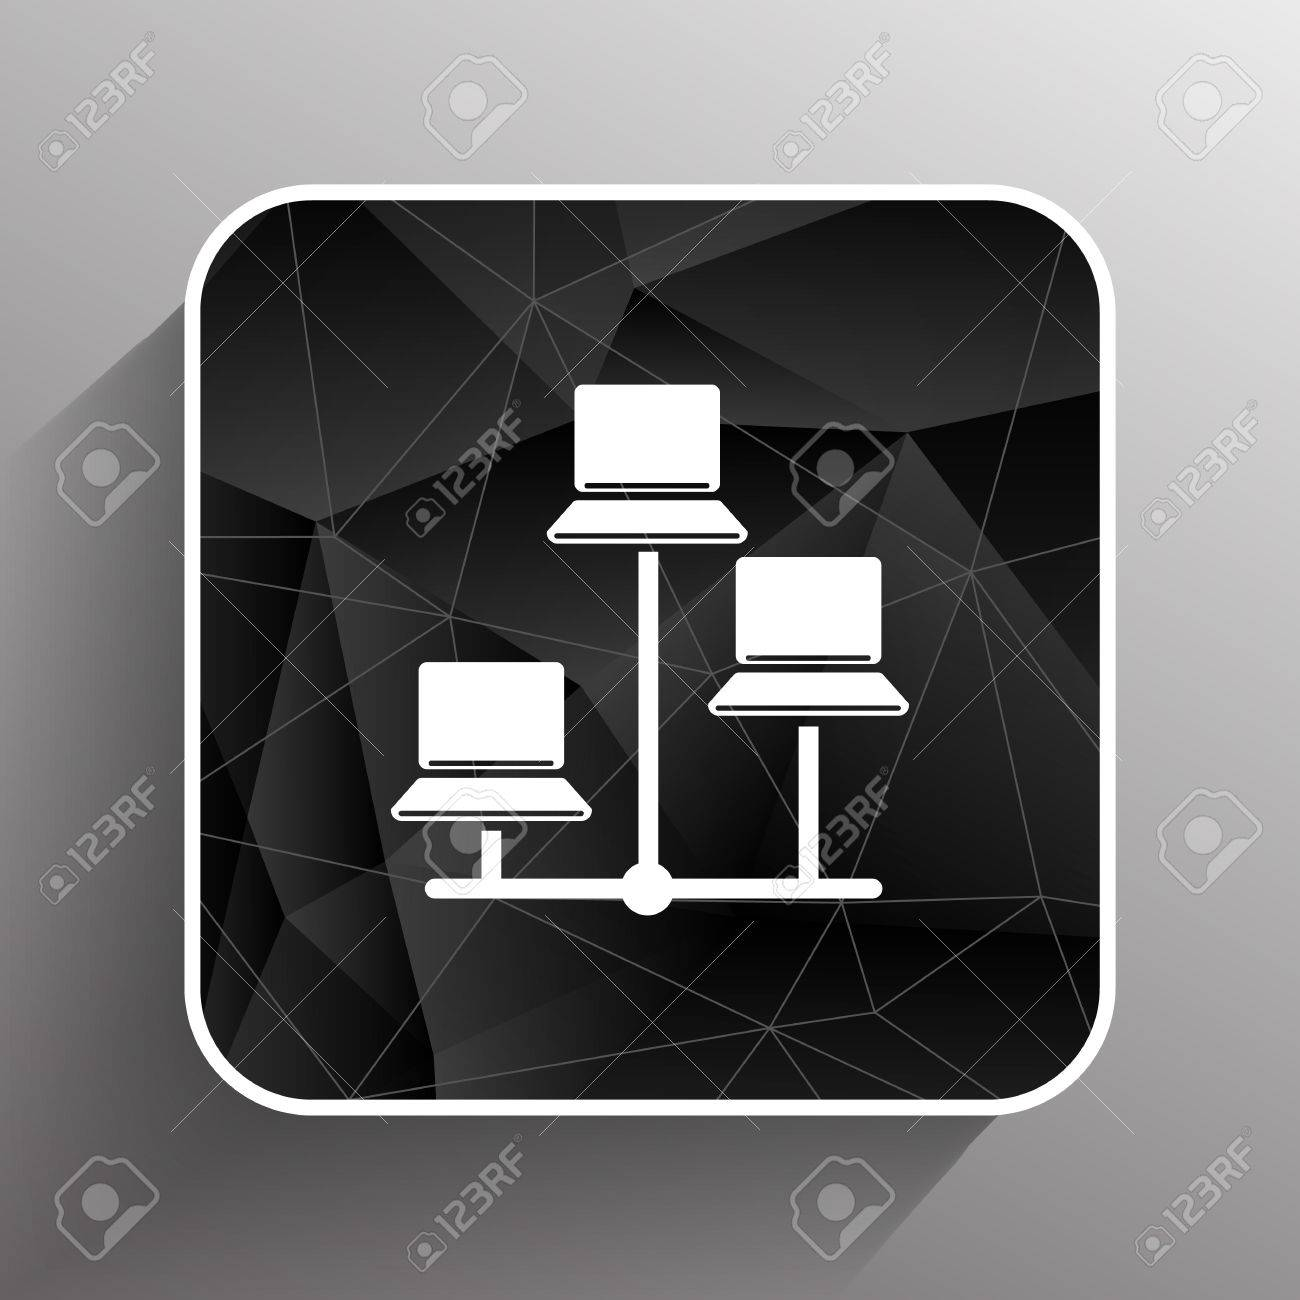 Network - Vector Icon Networking Wired Lan Web. Royalty Free ...